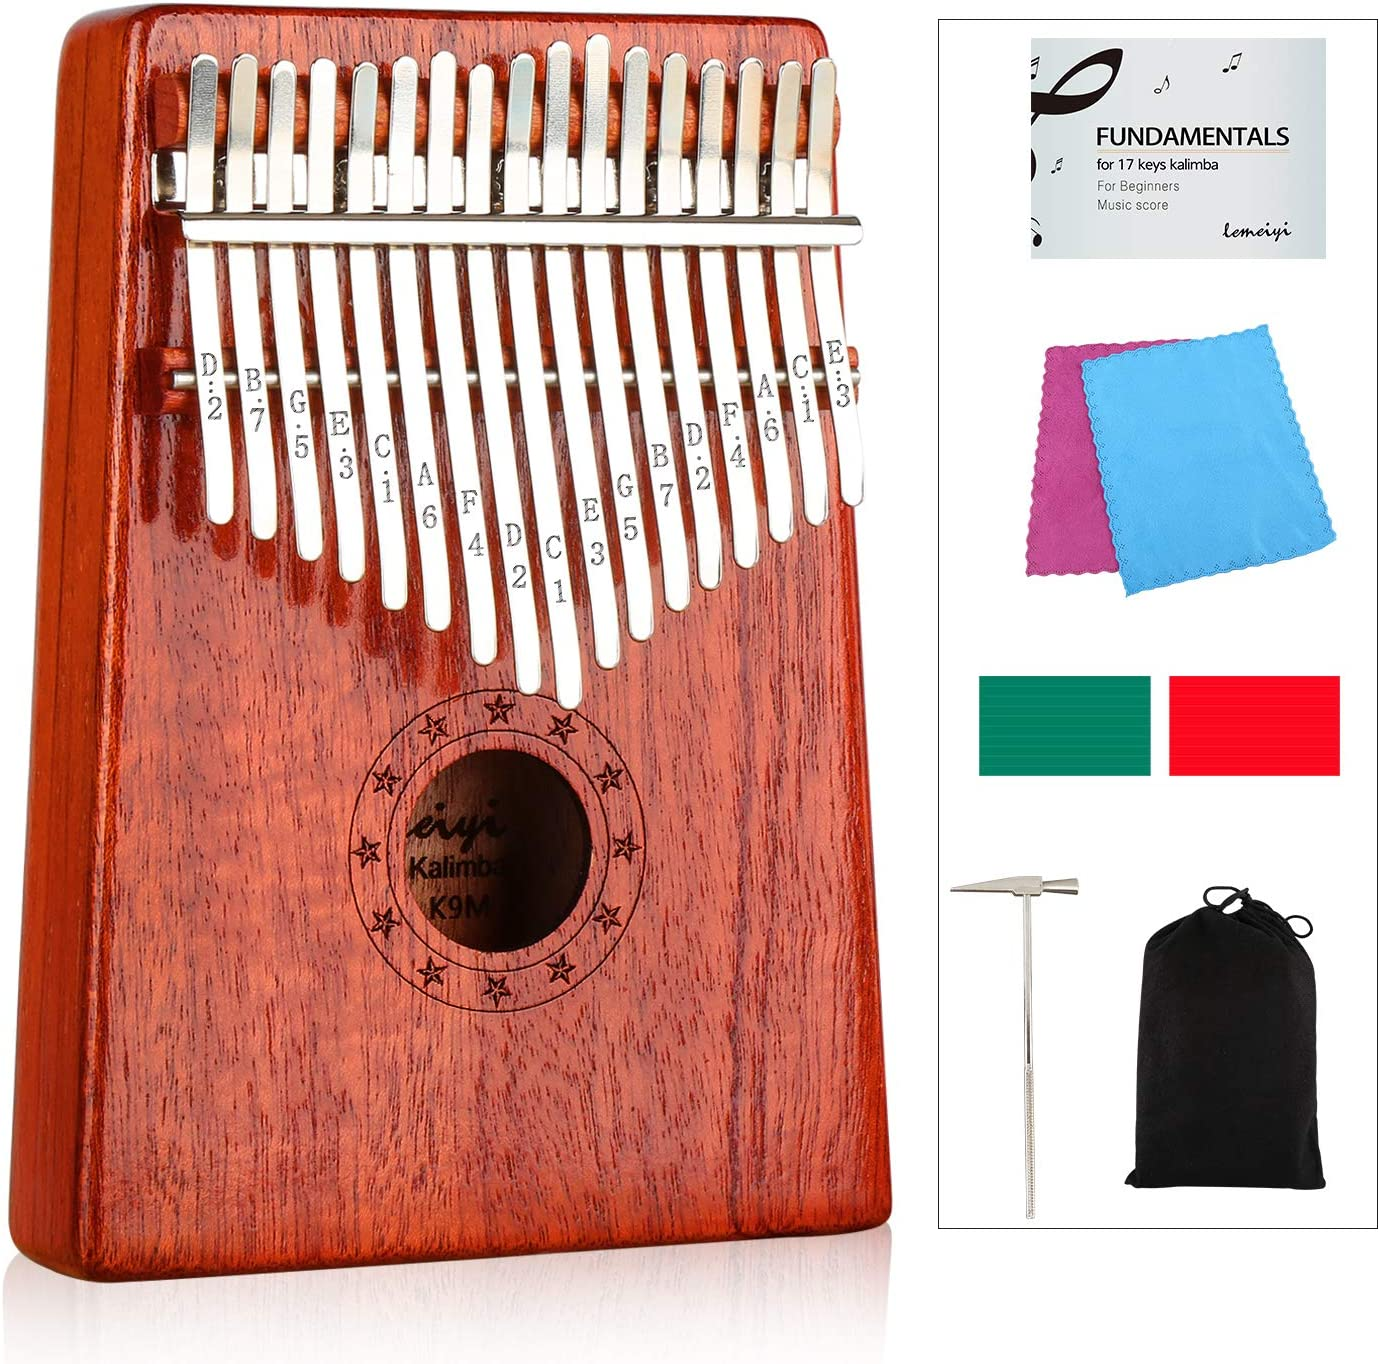 LEMEIYI Kalimba 17 Keys Thumb Piano with Study Instruction and Tune Hammer, Portable Mbira Sanza African Wood Finger Piano, Gift for Kids Adult Beginners Professional